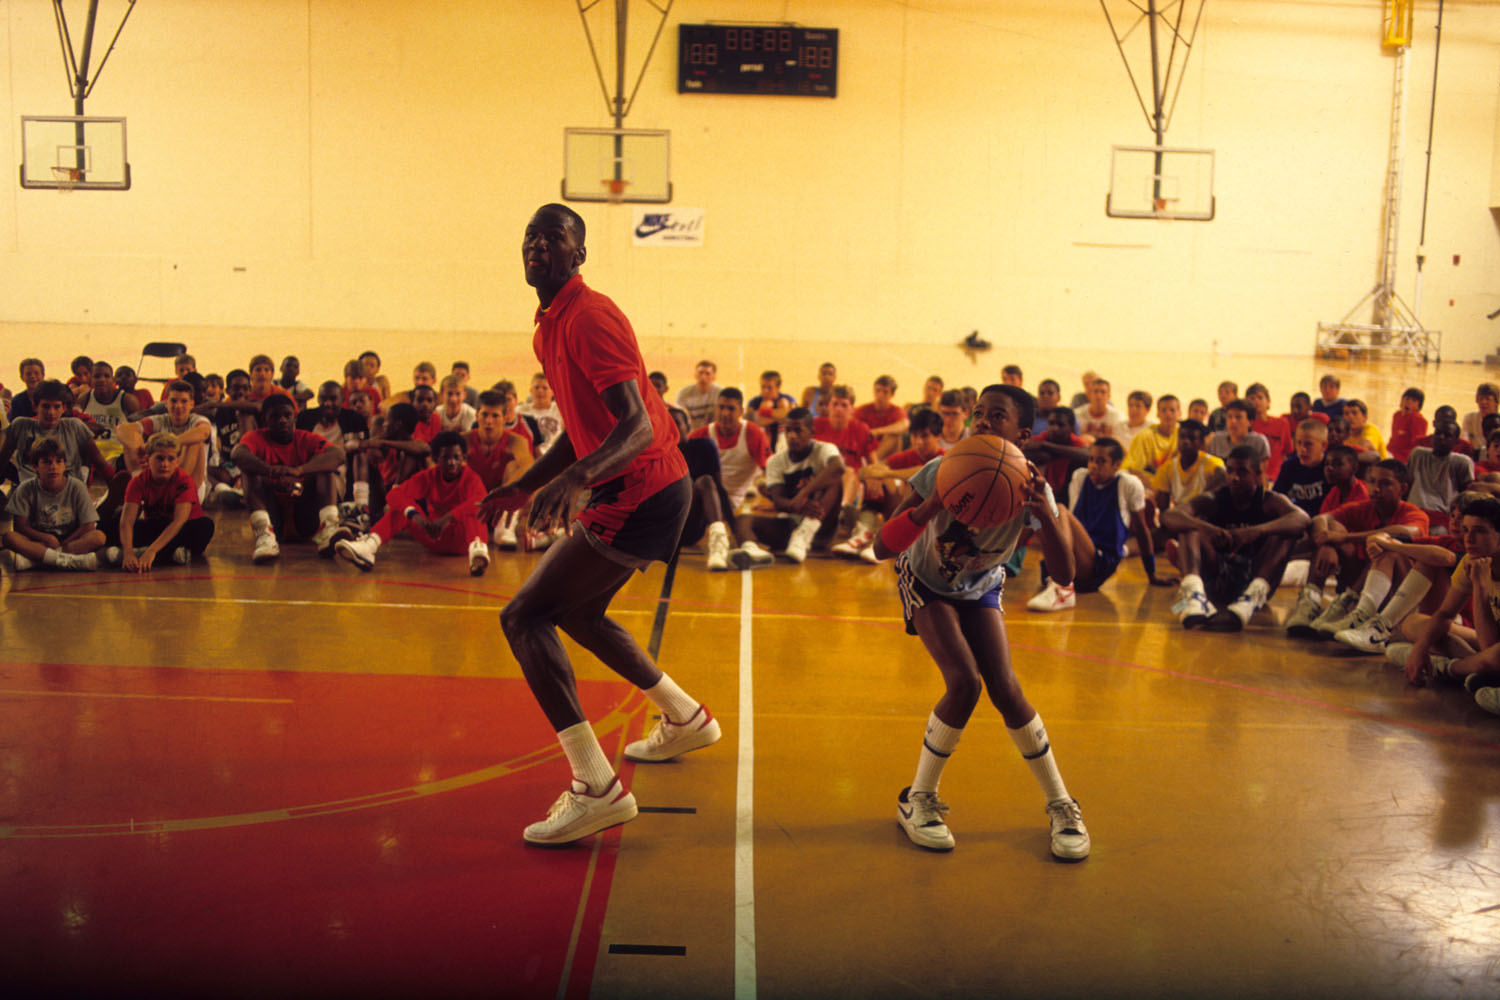 Michael Jordan playing one-on-one against a young basketball player during a basketball camp session at Illinois Benedictine College in 1987.